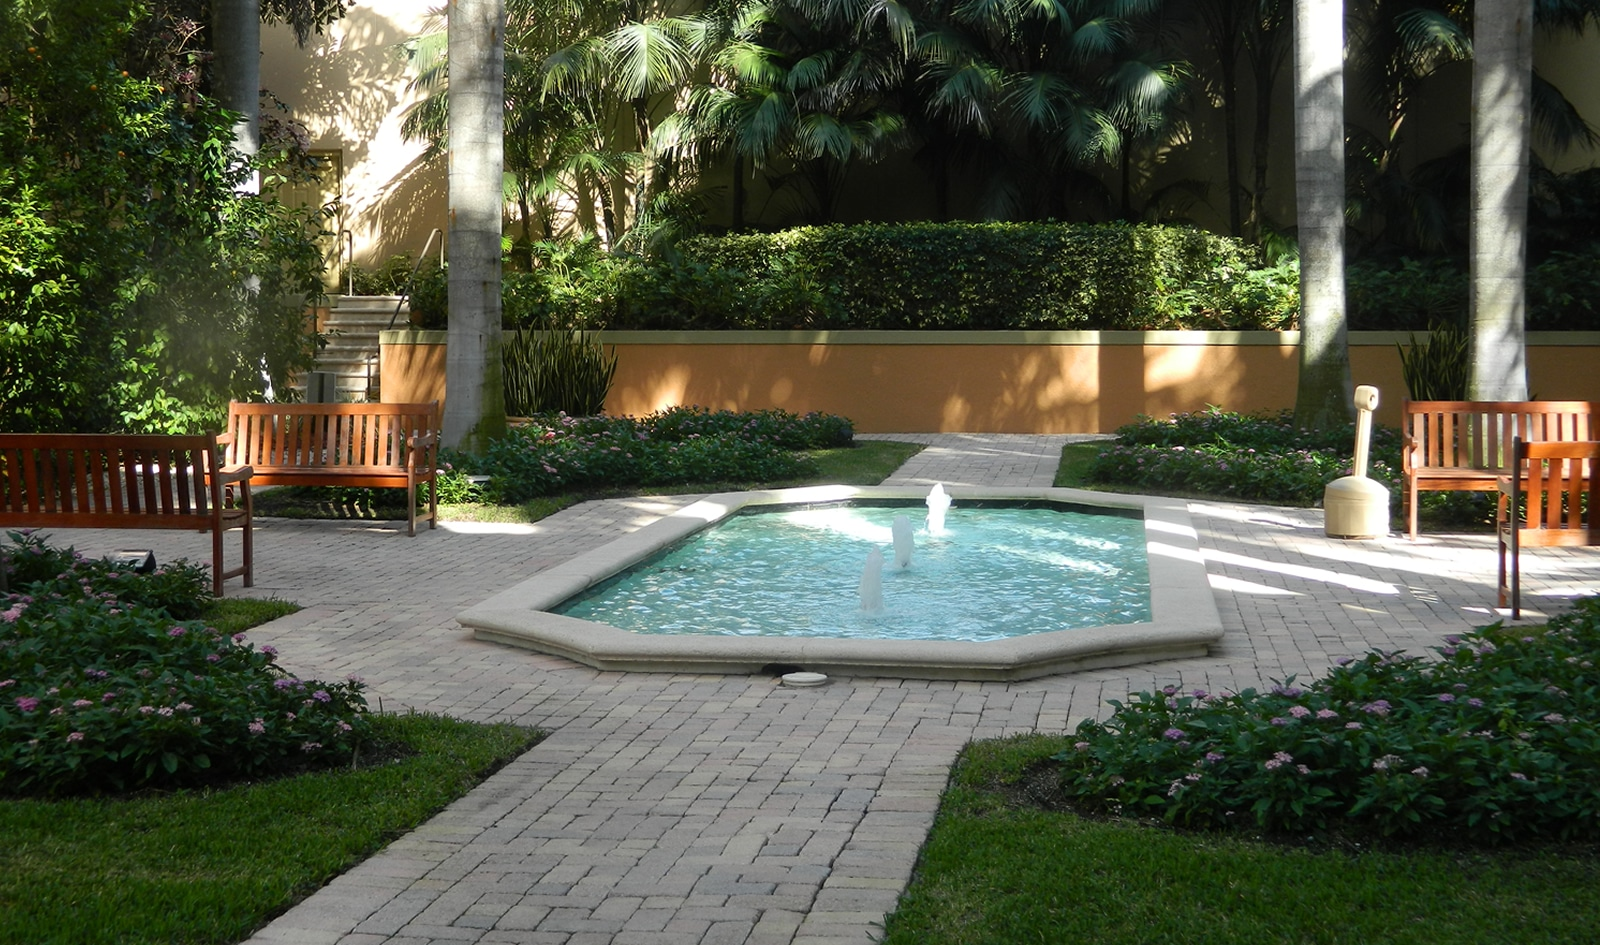 Brand new luxury apartments at the residences at cityplace 2 bedroom apartments in west palm beach